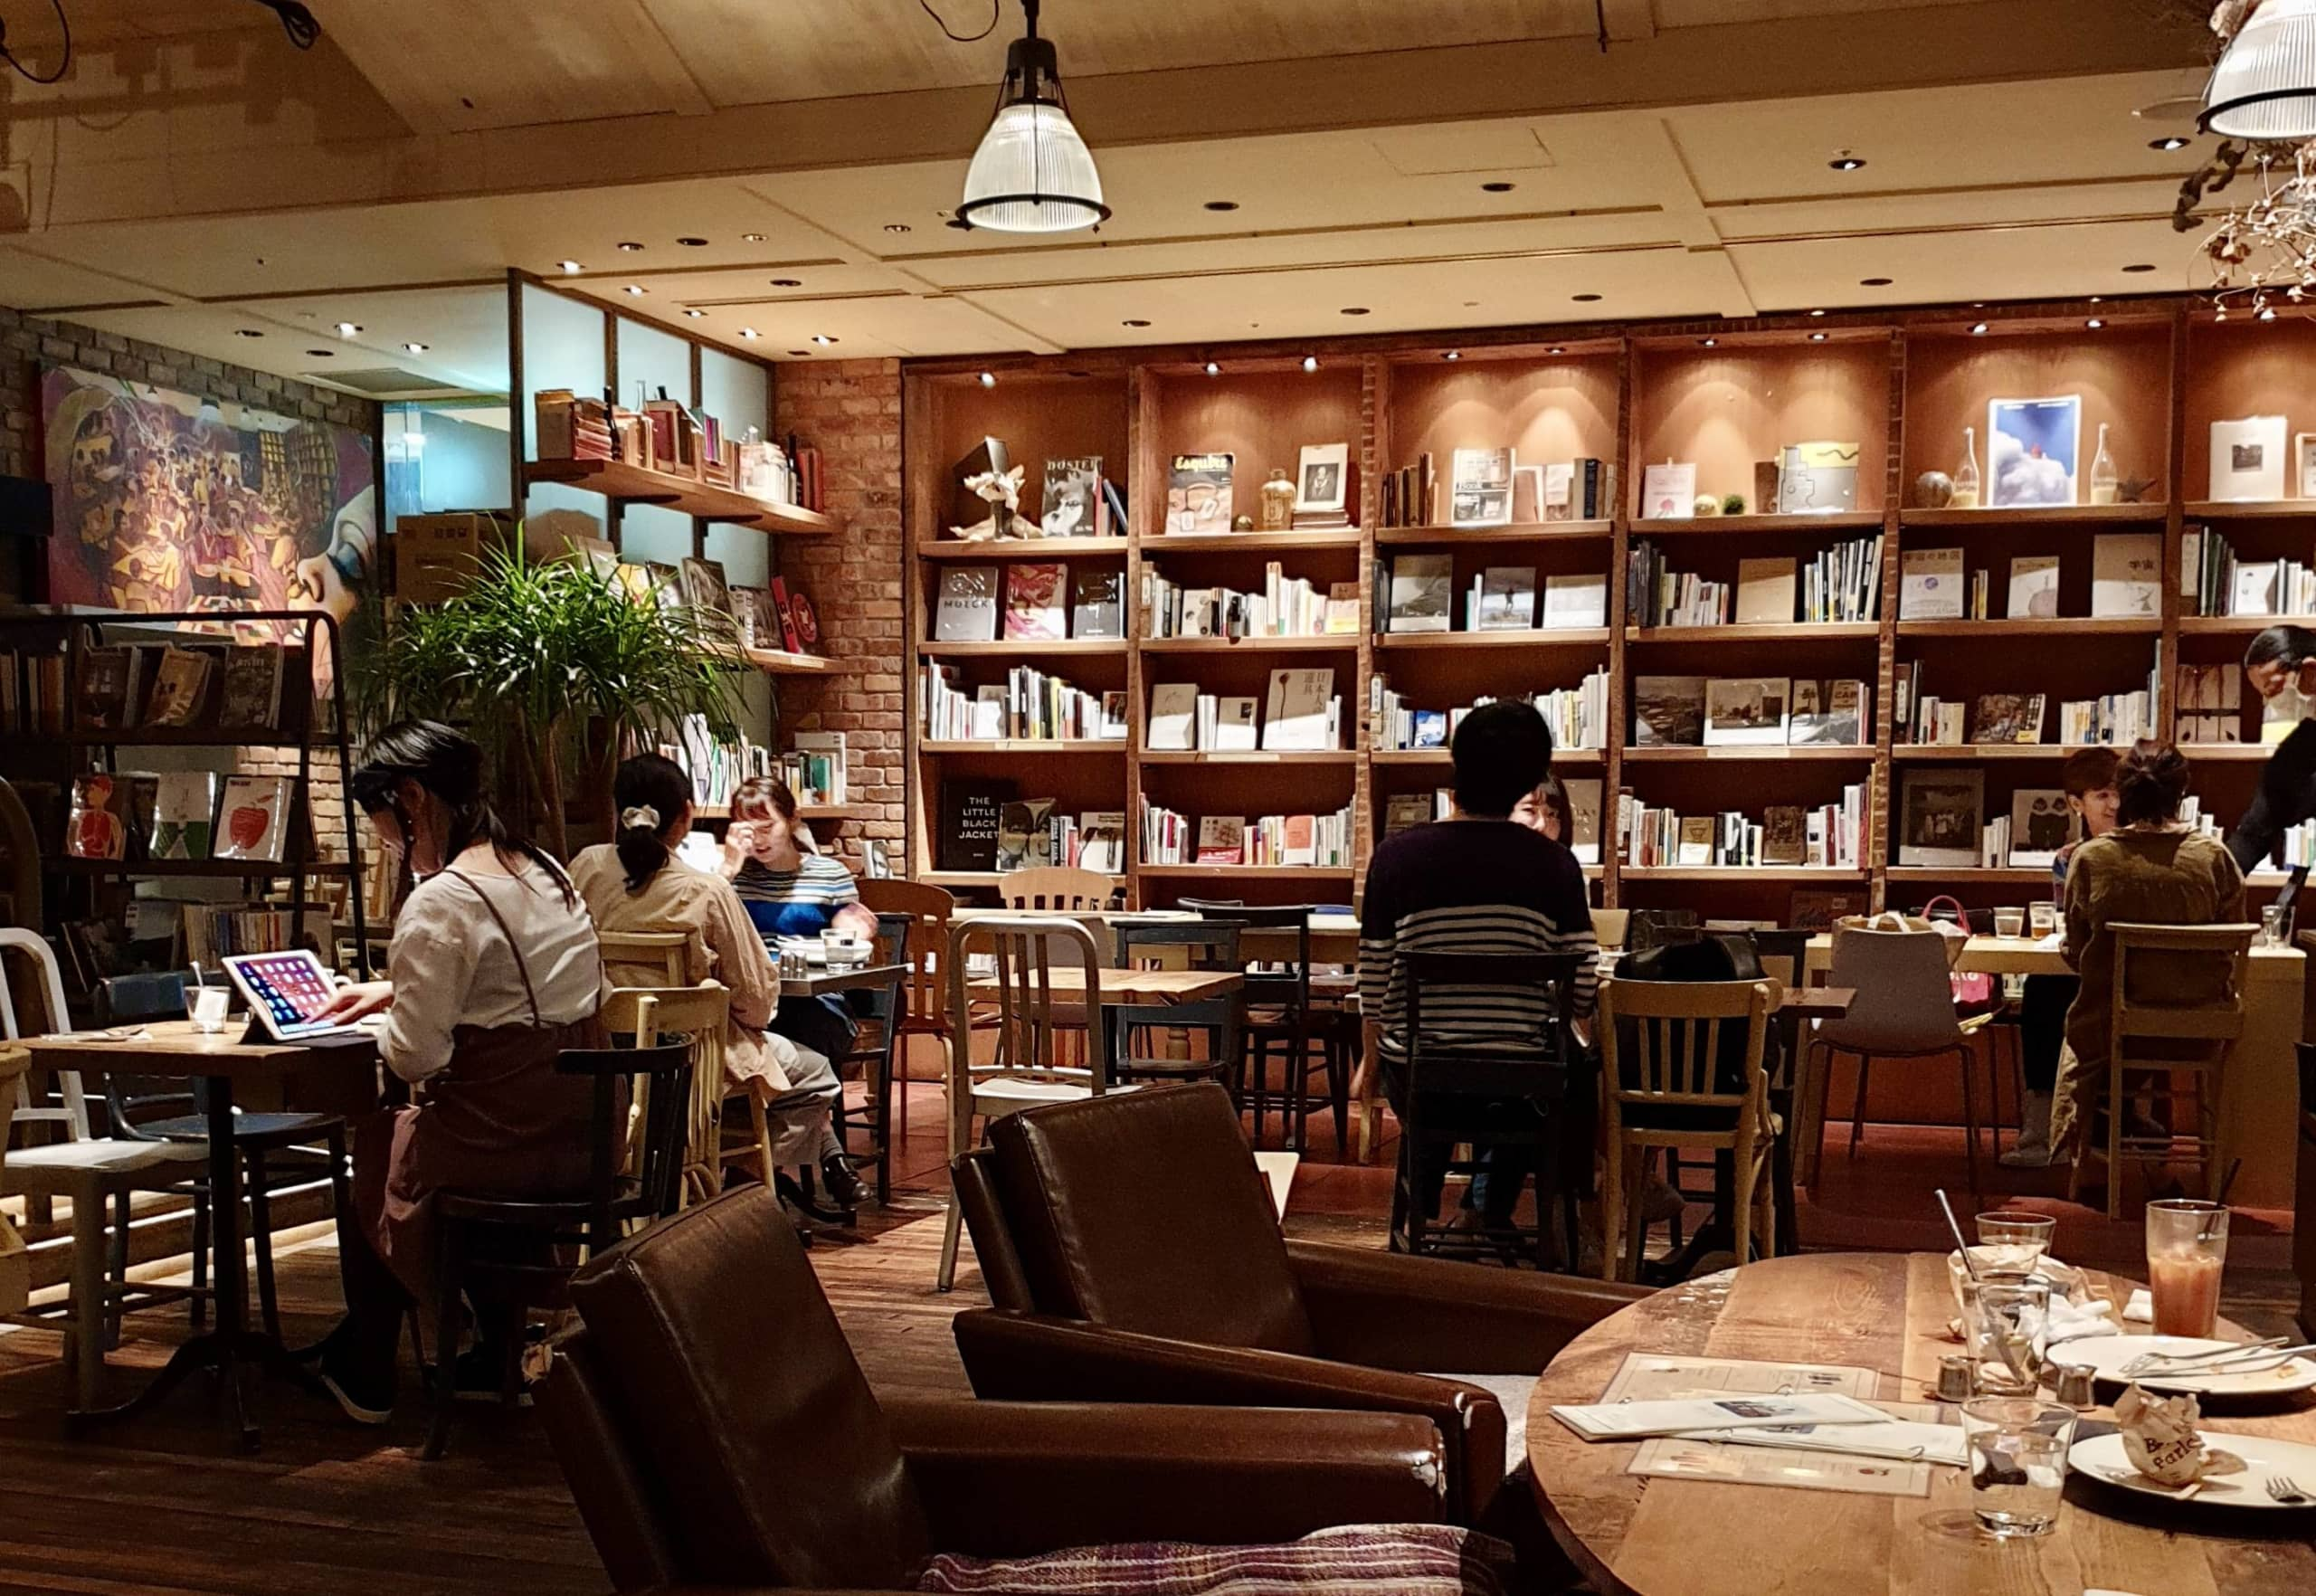 Cozy getaway: Brooklyn Parlor is a New York-themed restaurant and cafe that has bookshelves stocked with art books and magazines. | LEO HOWARD